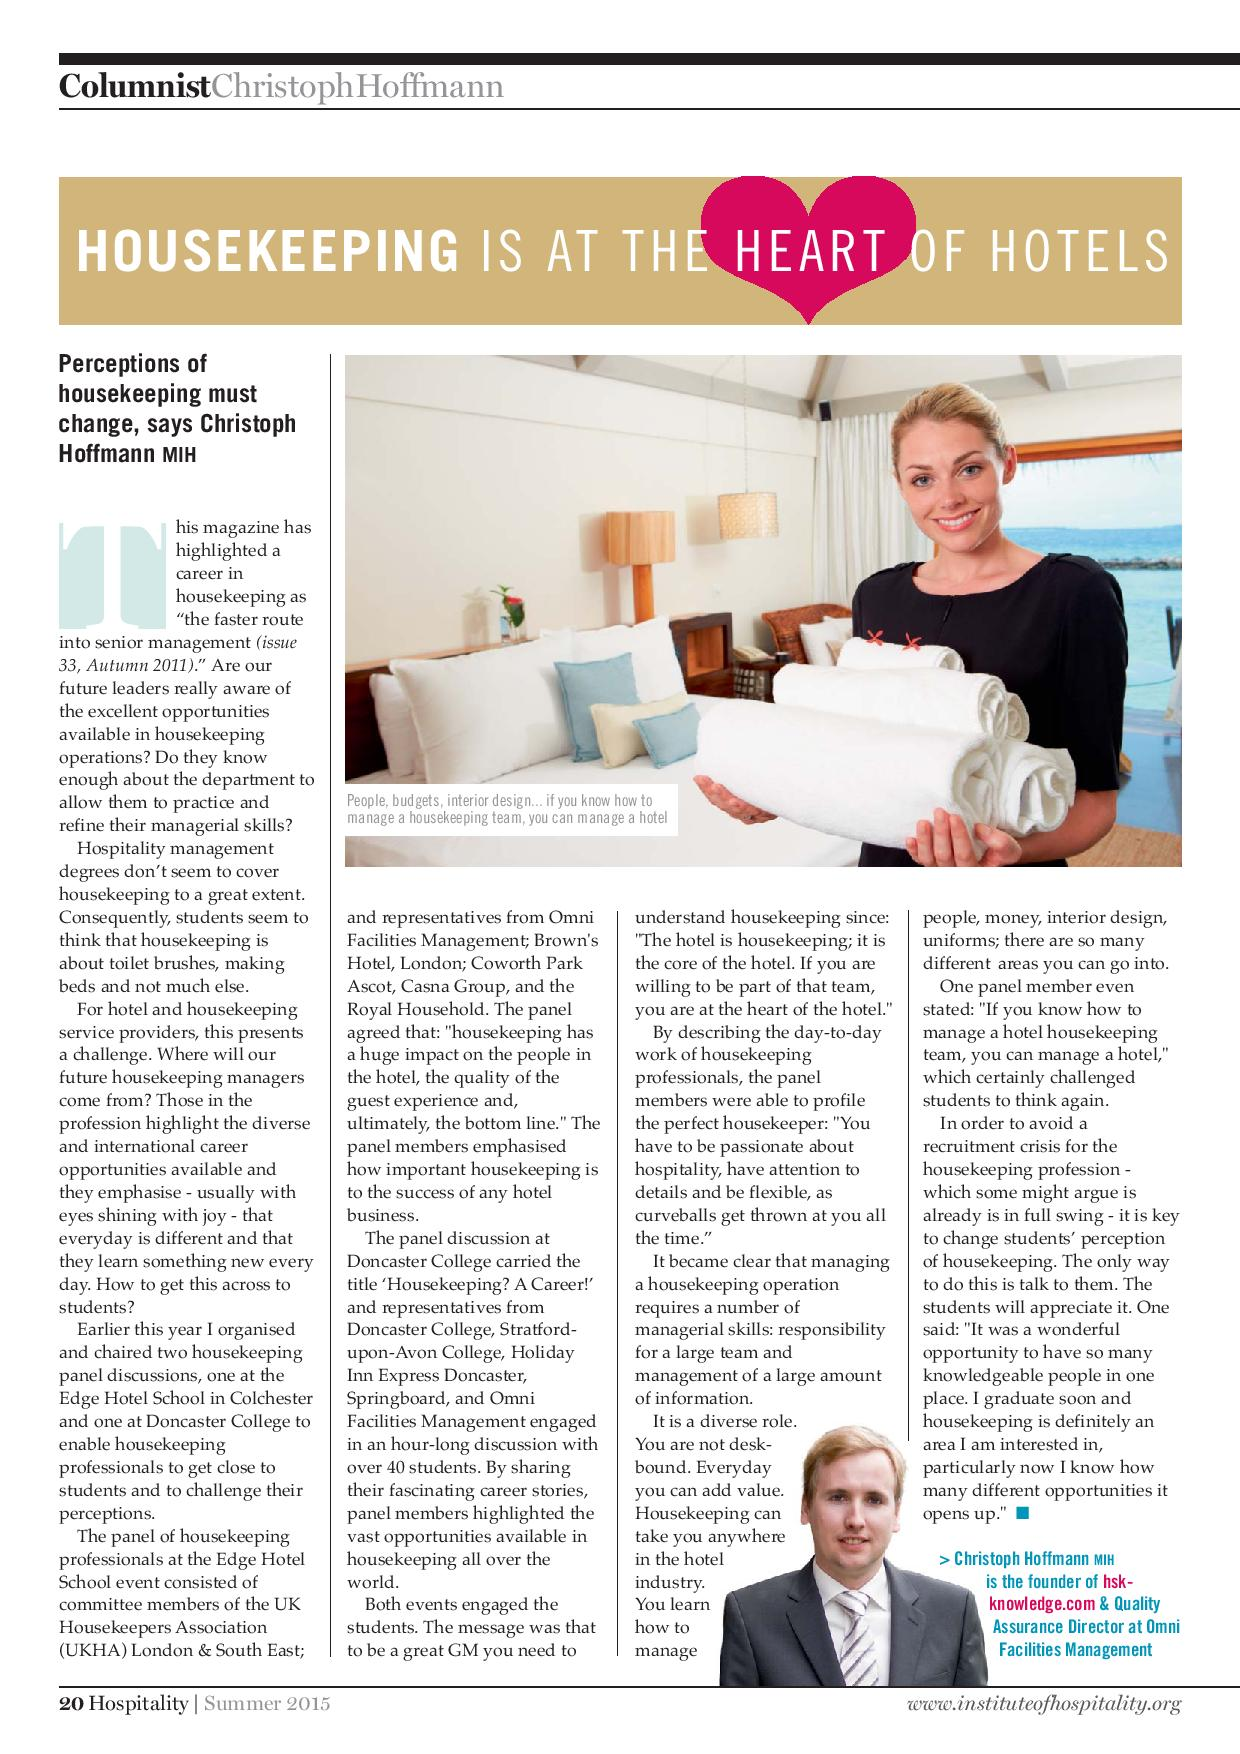 Housekeeping is at the heart of hotels